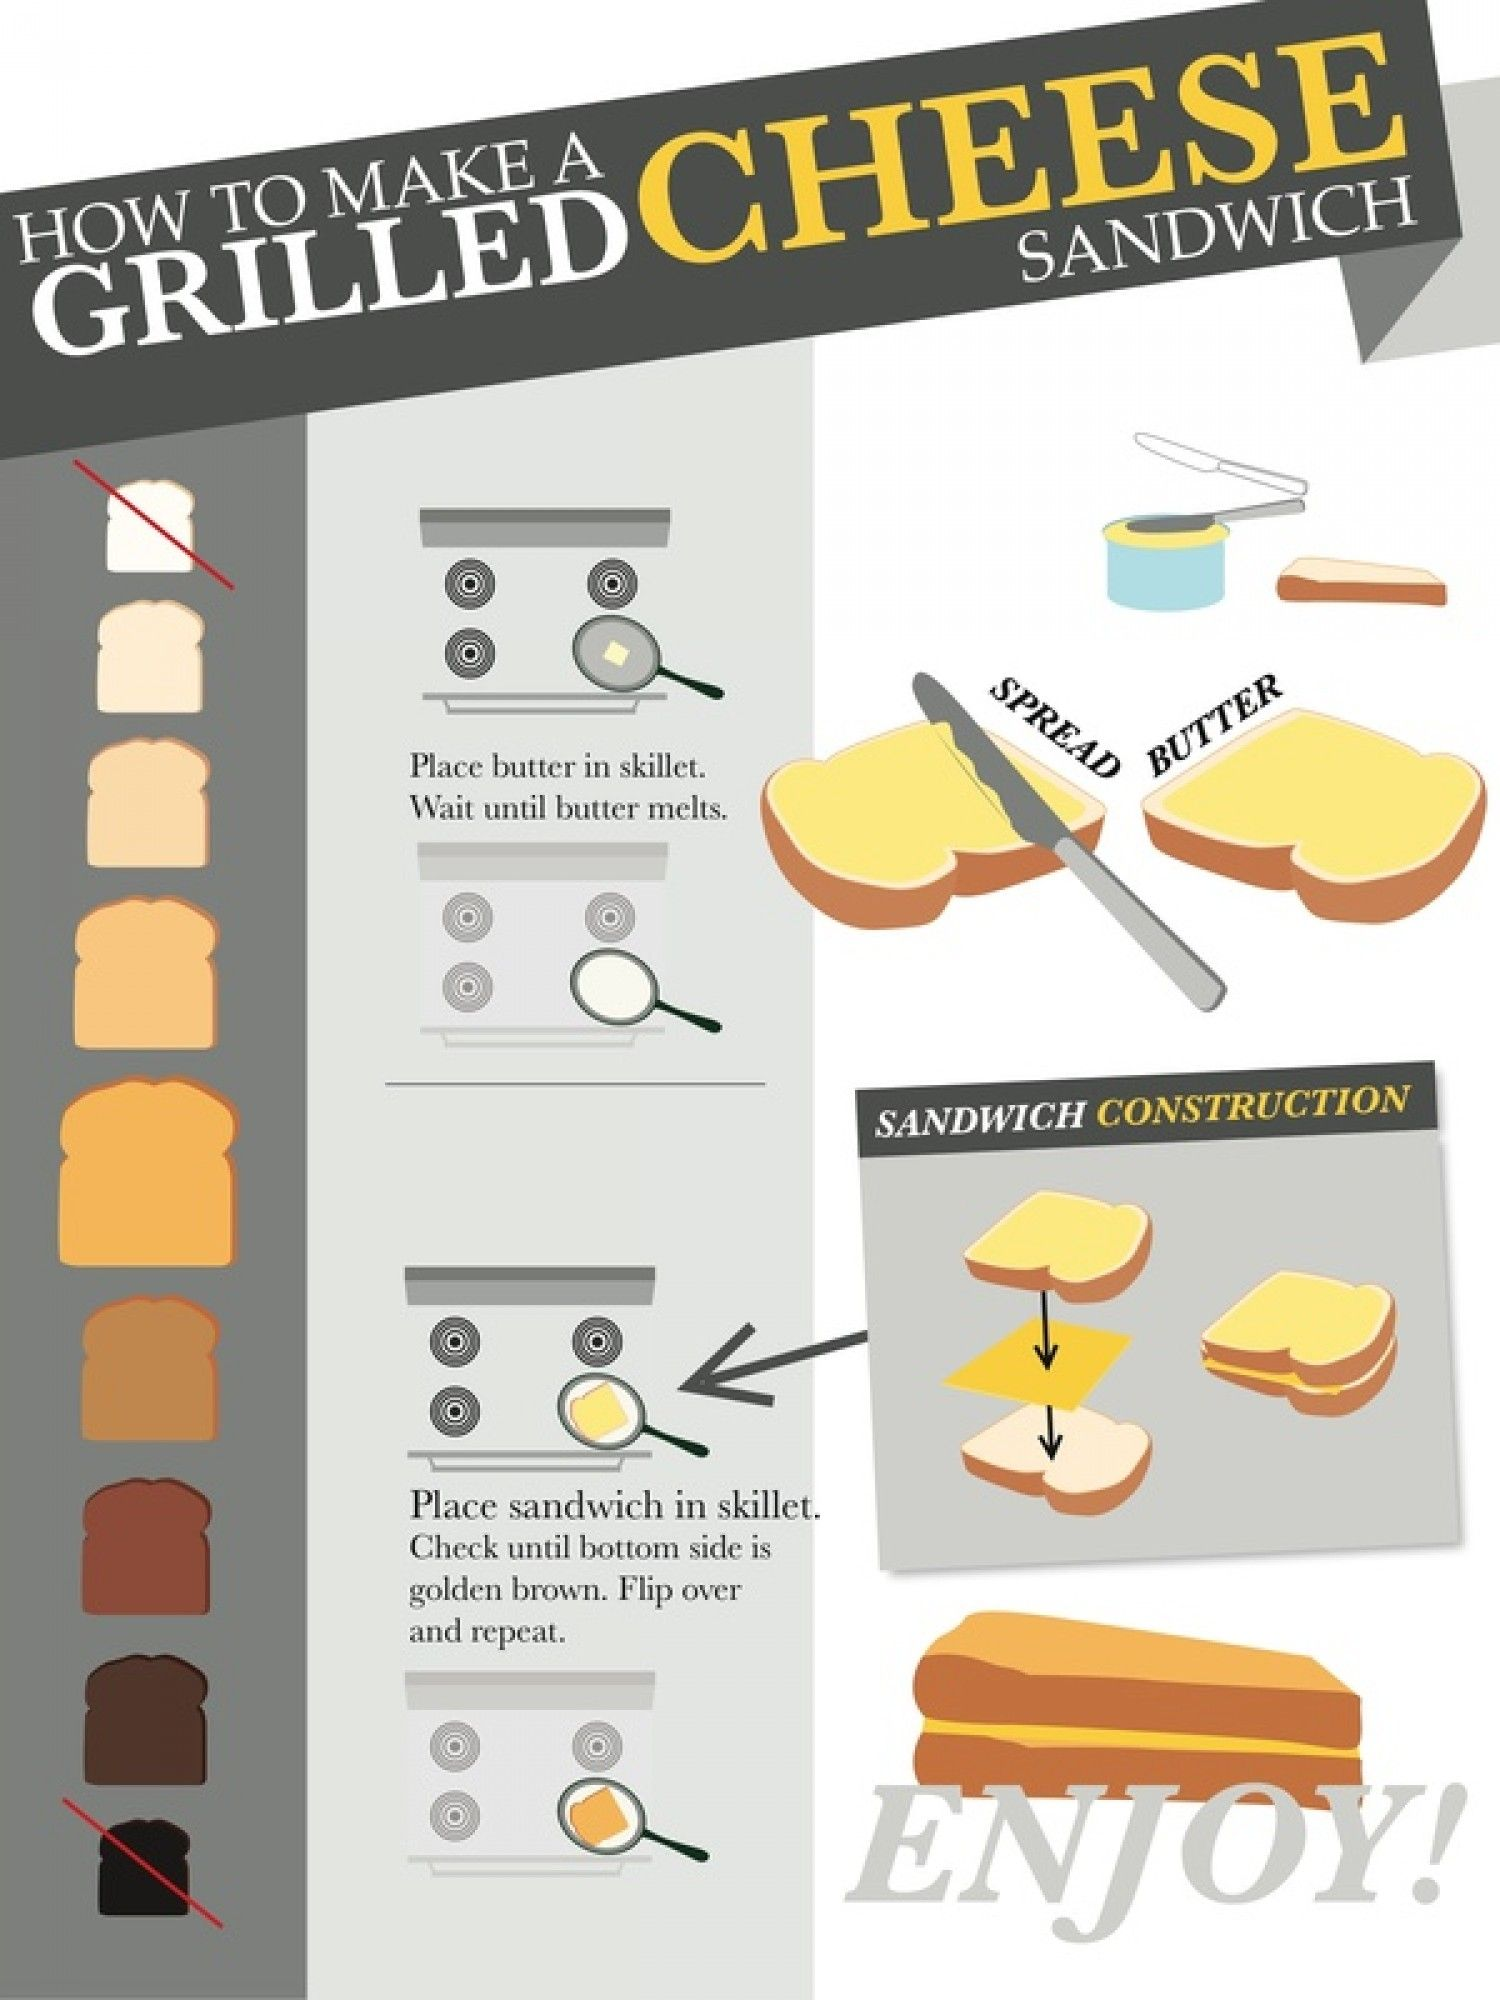 At home grilled cheese | Other Grilled Cheese | Pinterest ...